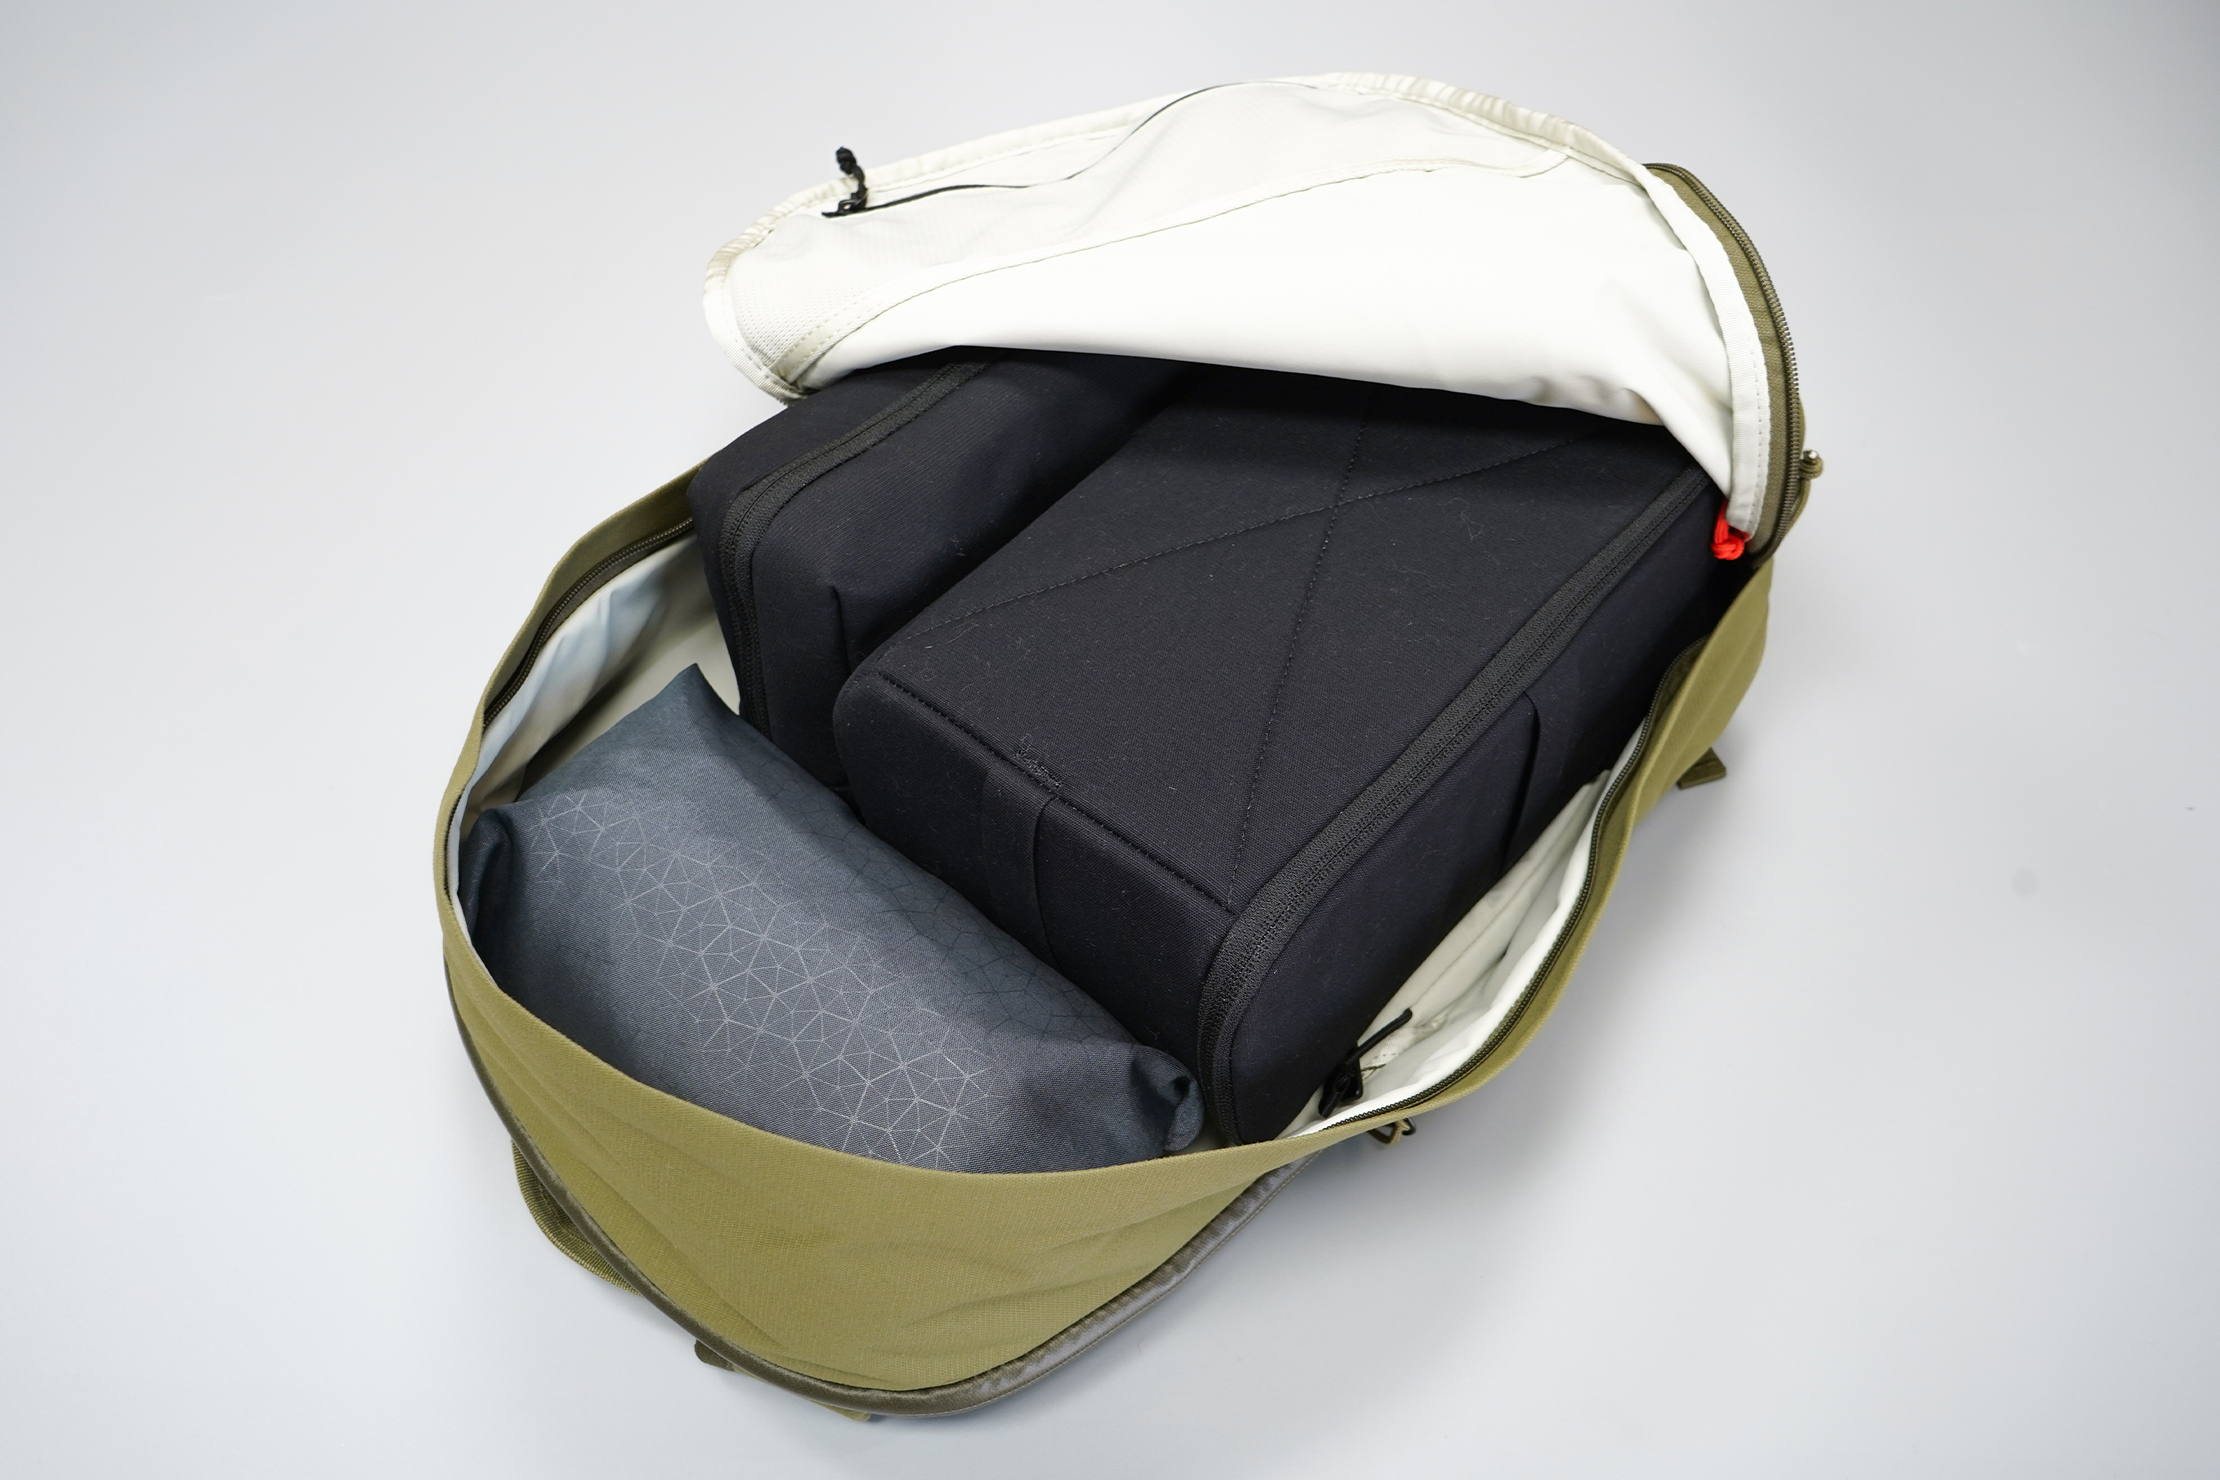 Moment MTW Backpack | MTW Camera Insert inside the main compartment